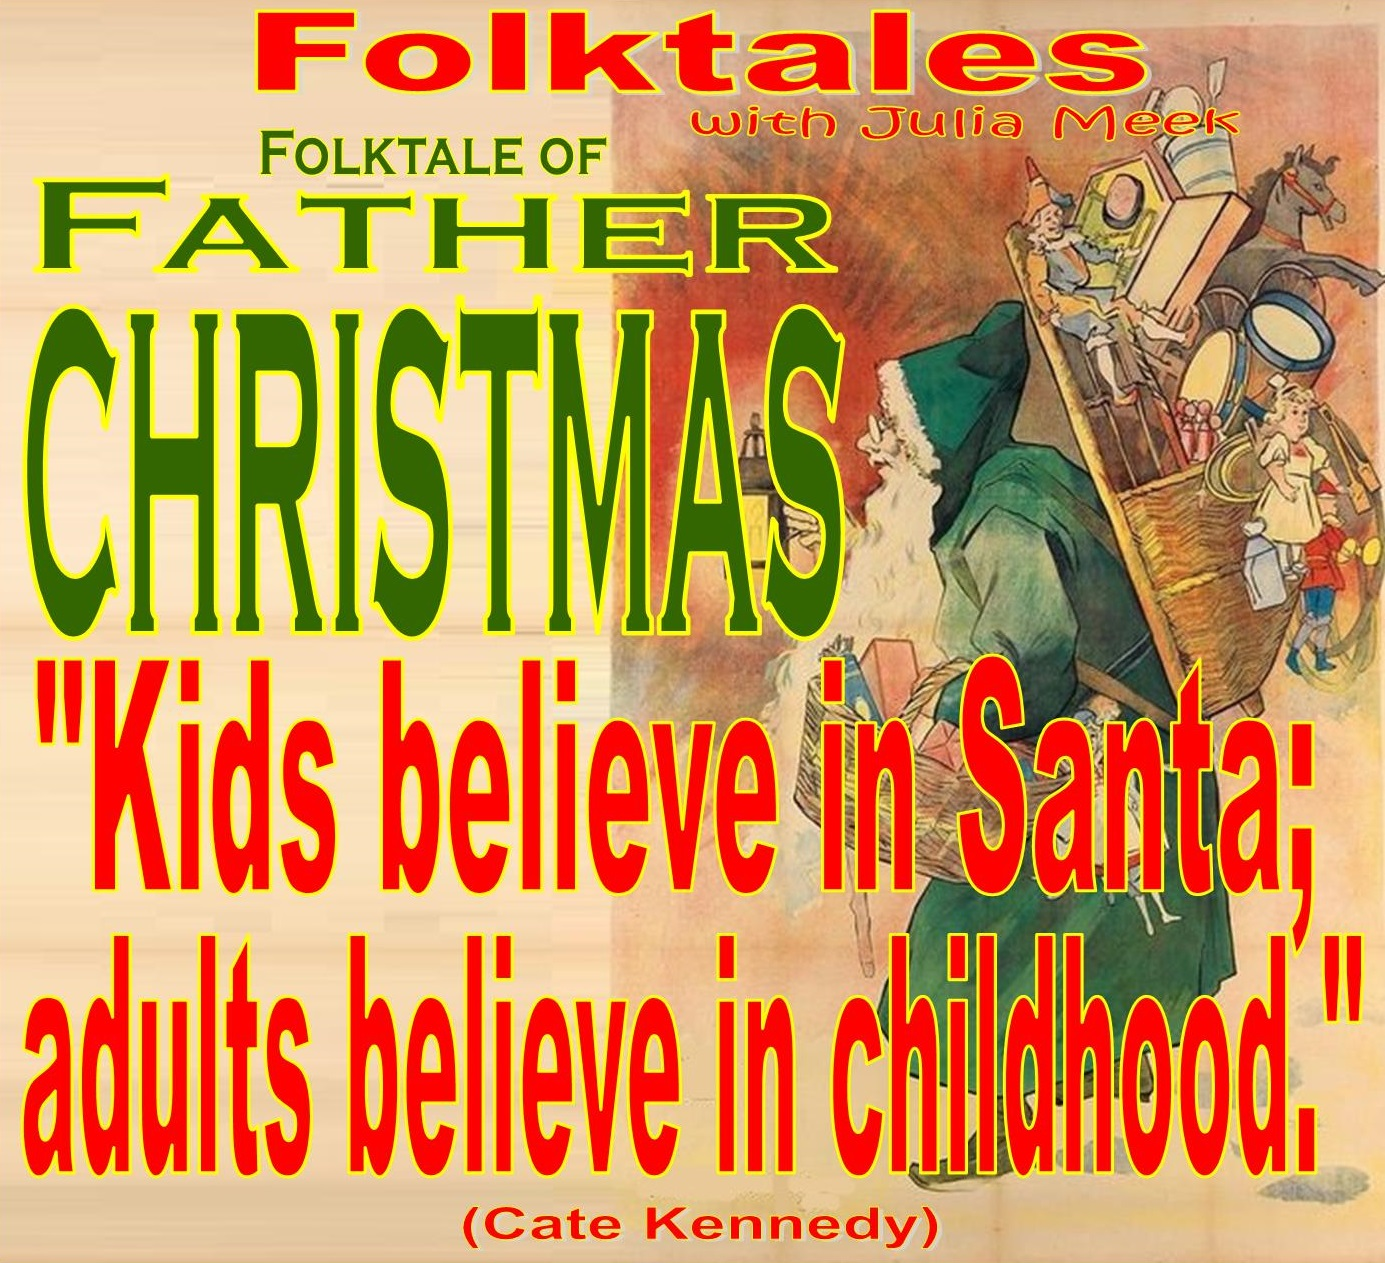 Caption: WBOI's Folktale of Father Christmas, Credit: Julia Meek